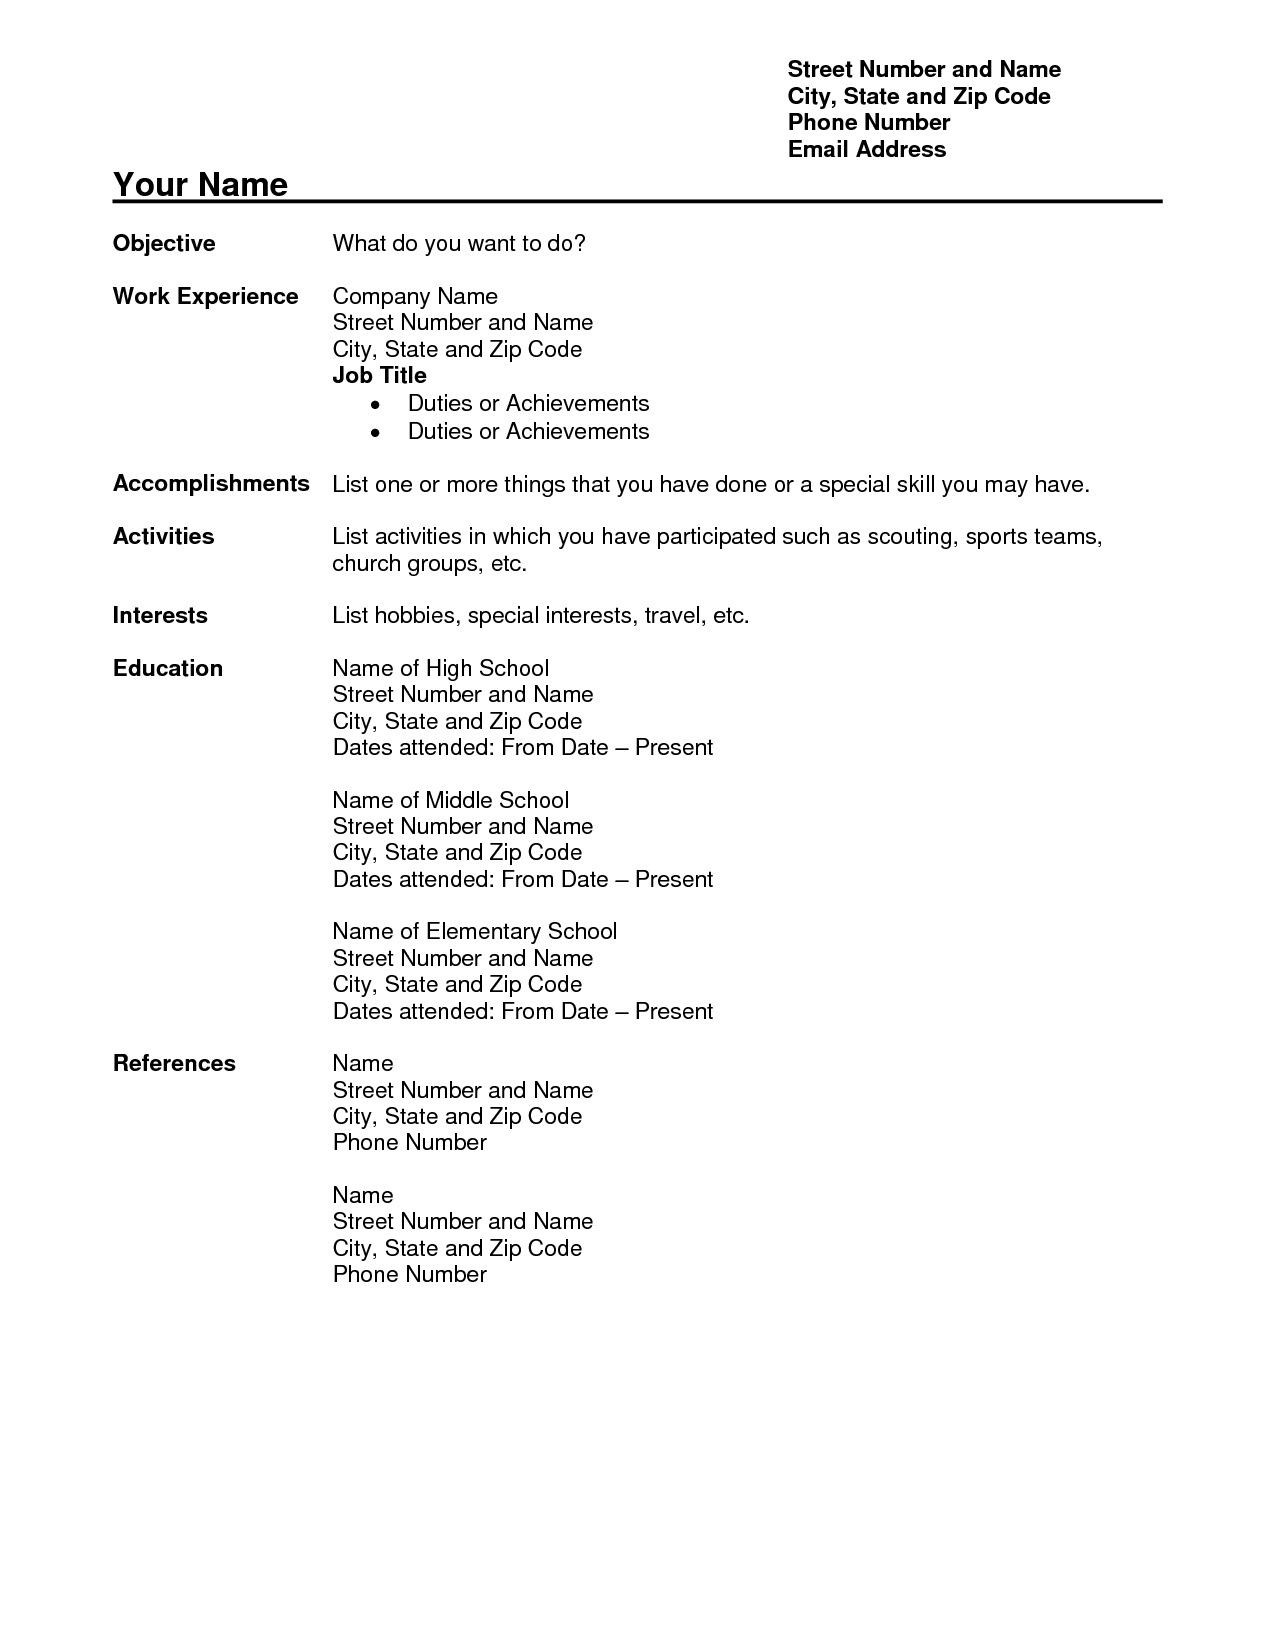 free teacher resume templates download free teacher resume templates download free teacher resume templates microsoft word teaching resume template word